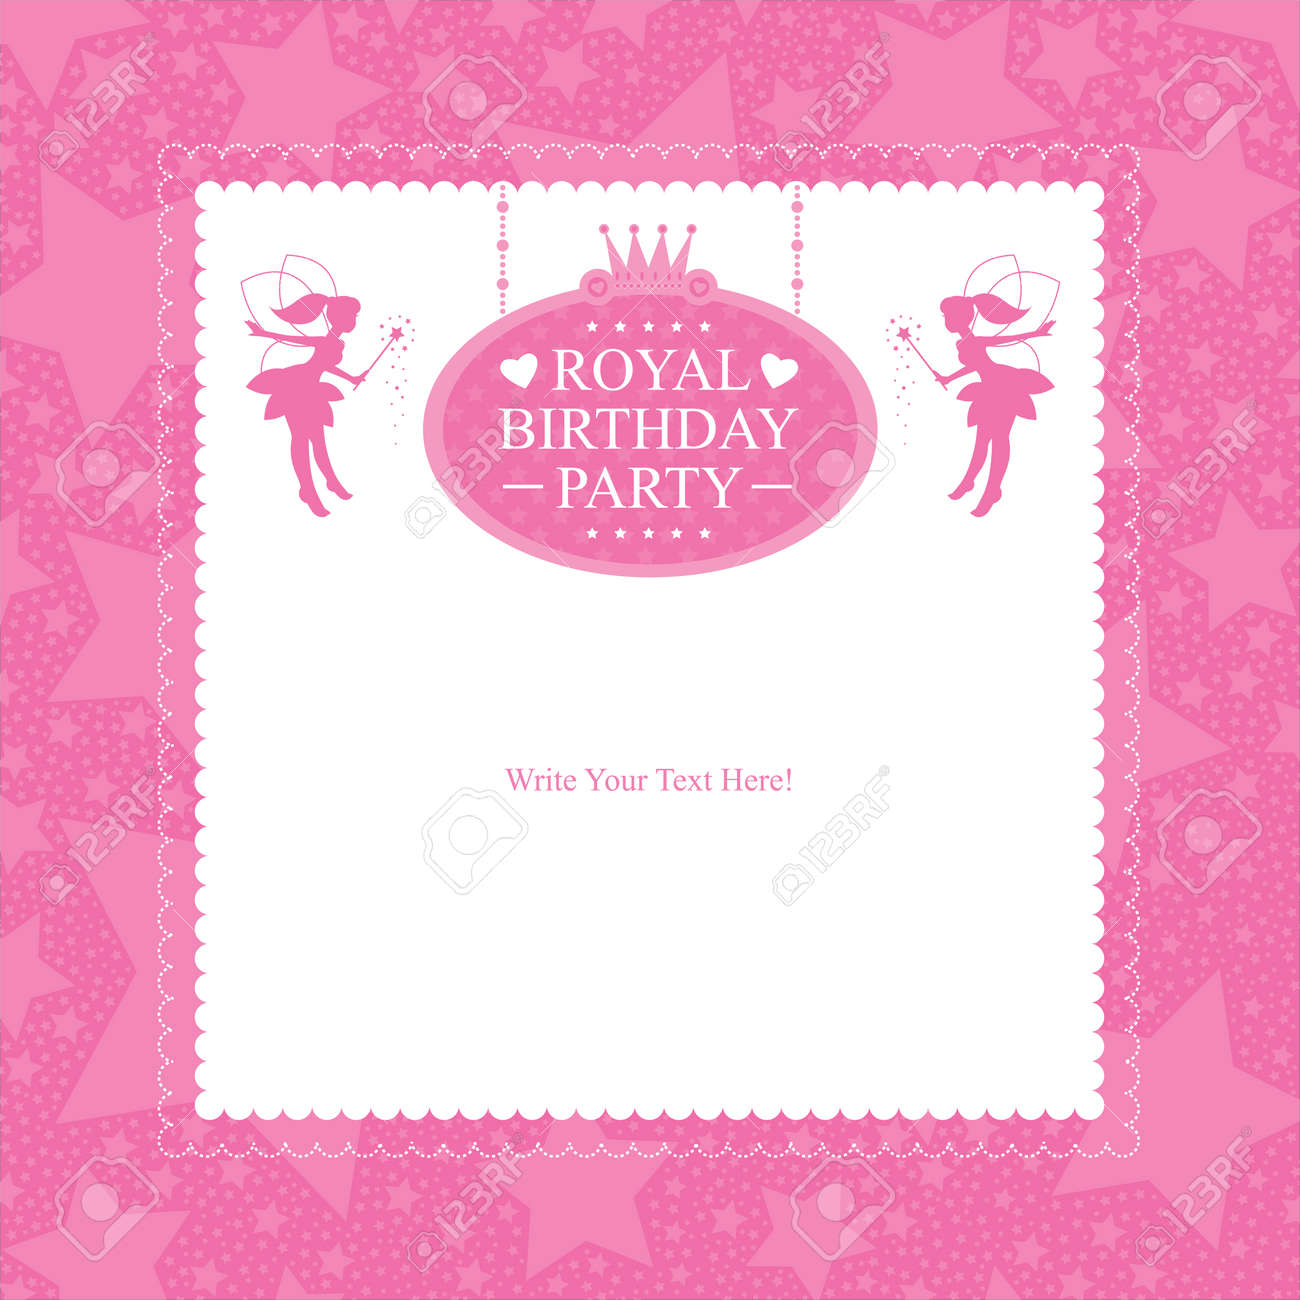 Excellent Princess Birthday Invitation Card Design Royalty Free Cliparts Funny Birthday Cards Online Elaedamsfinfo